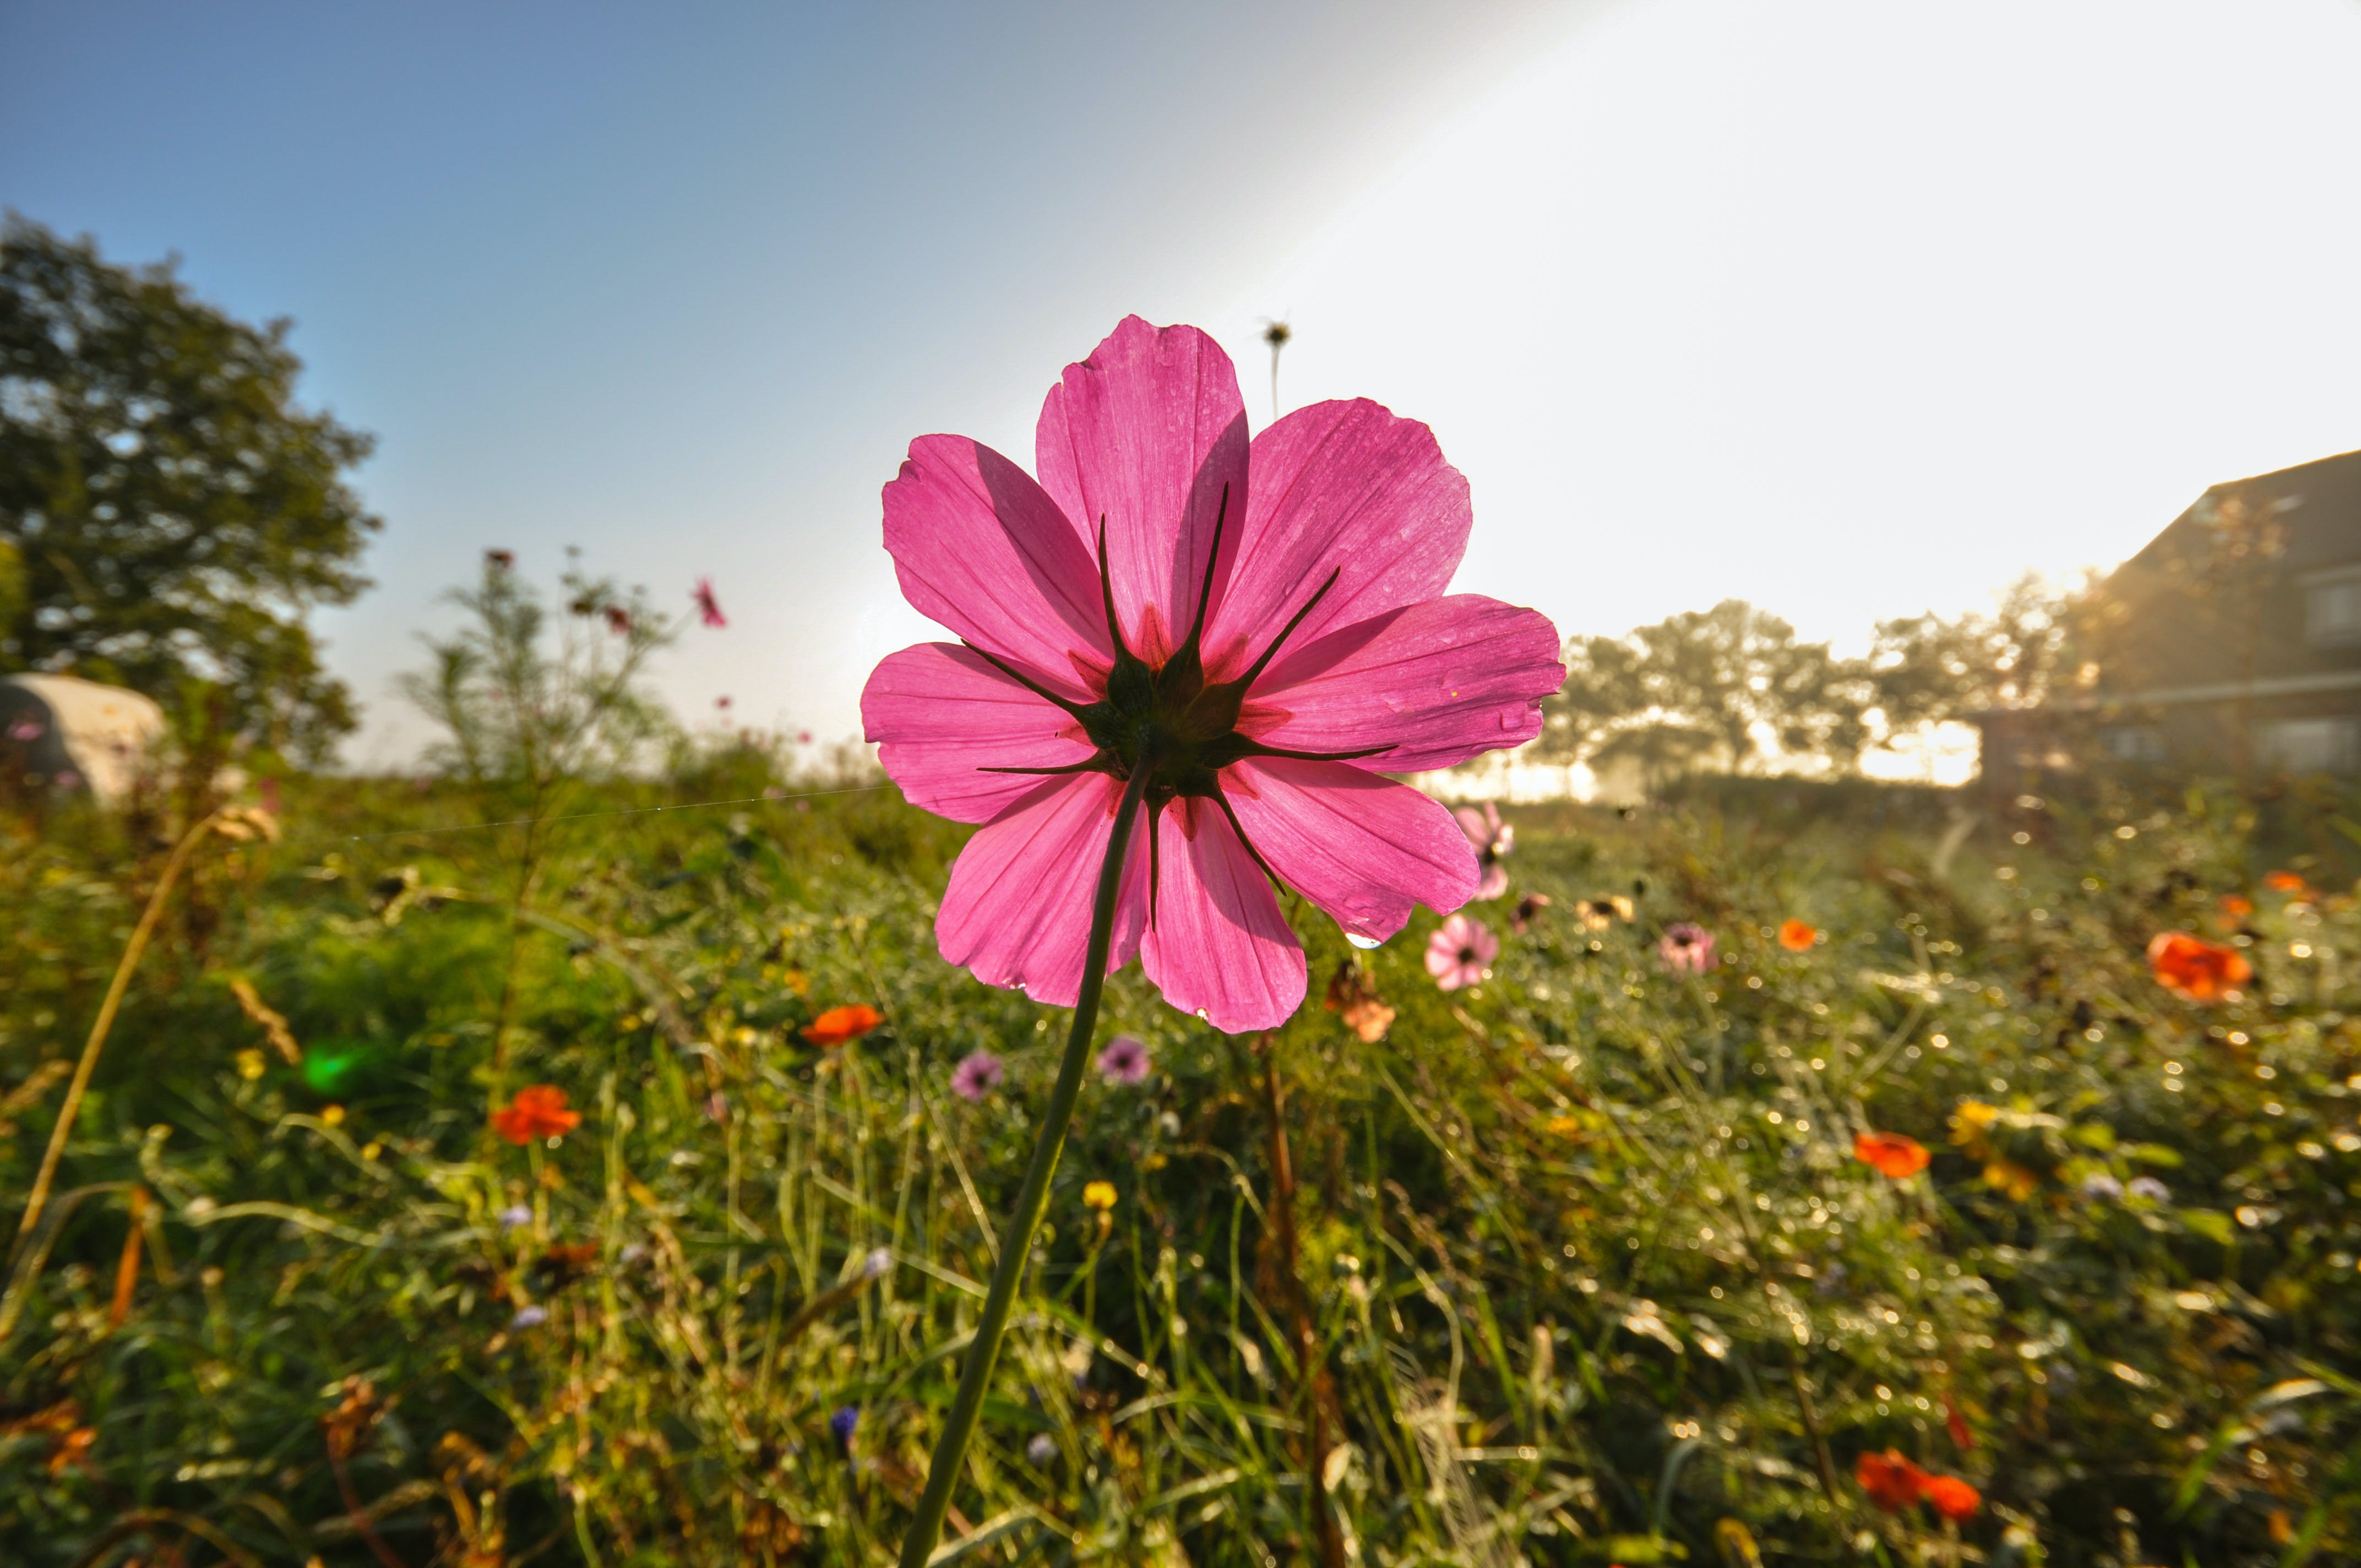 Close-up Photography of Pink Cosmos Flower Under Blue Sky